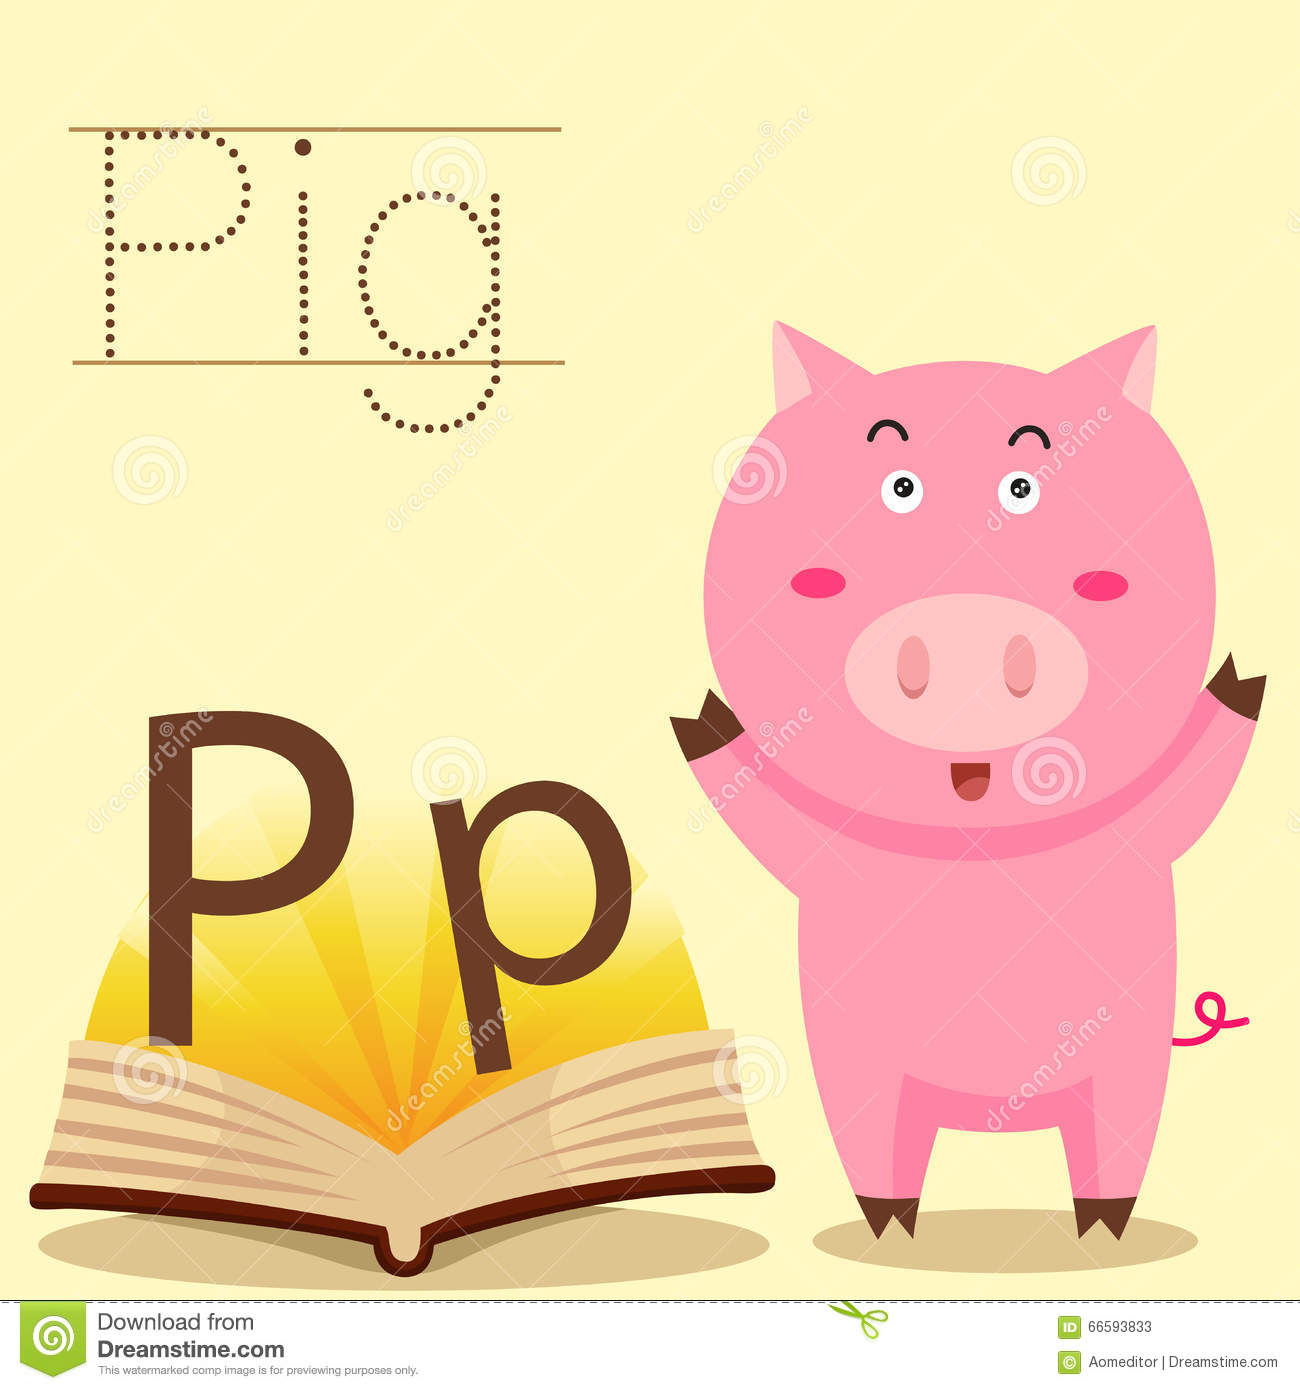 Illustrator Of P For Pig Vocabulary Stock Illustration